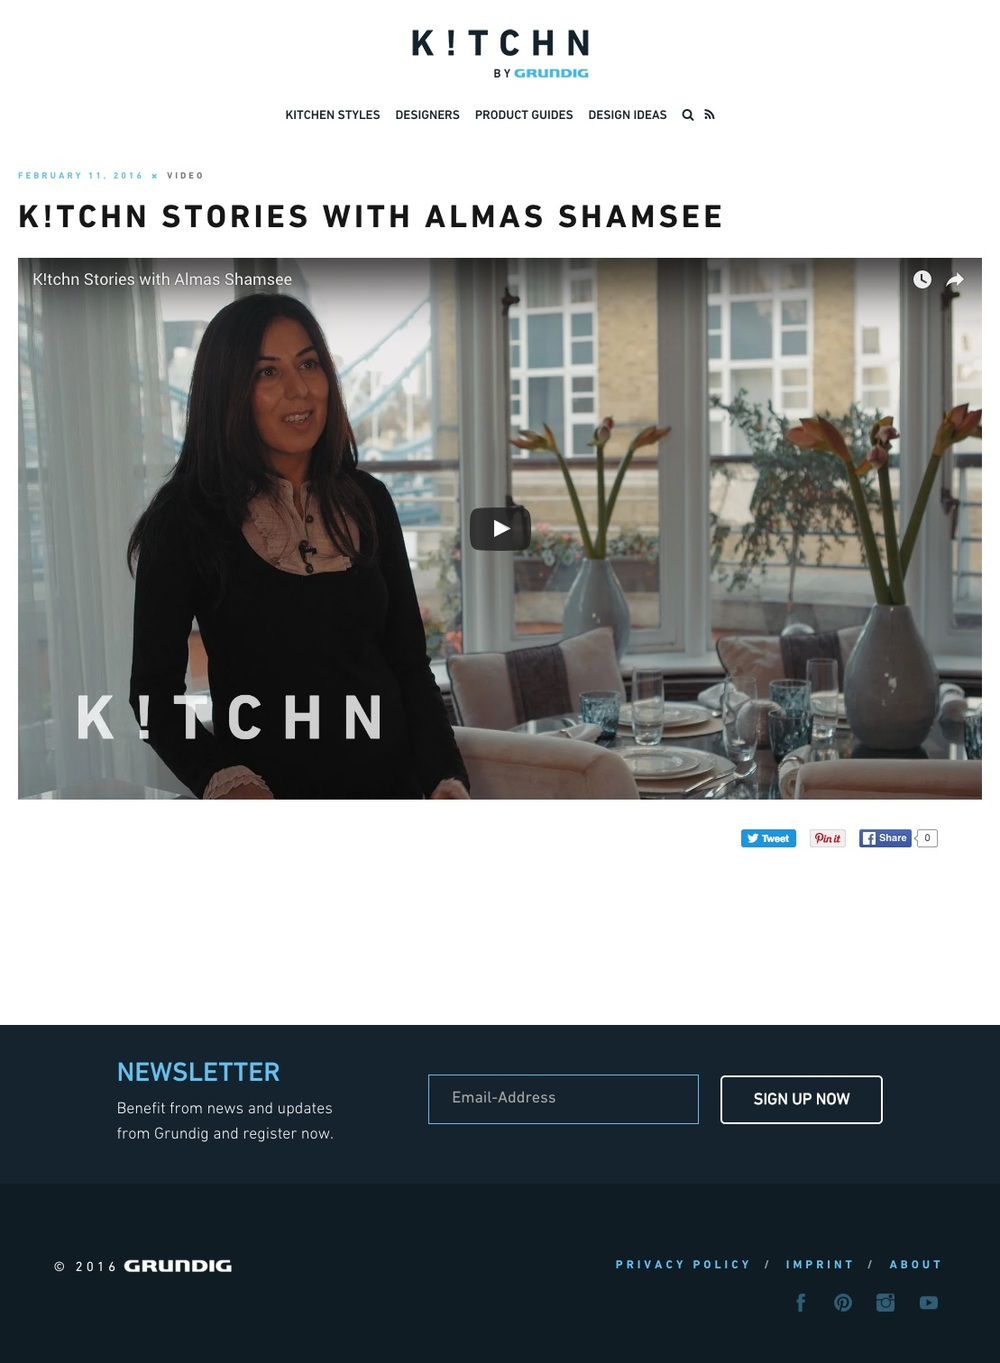 ktchnmag-com-2016-02-11-ktchn-stories-with-almas-shamsee-2-1460468262995.jpg